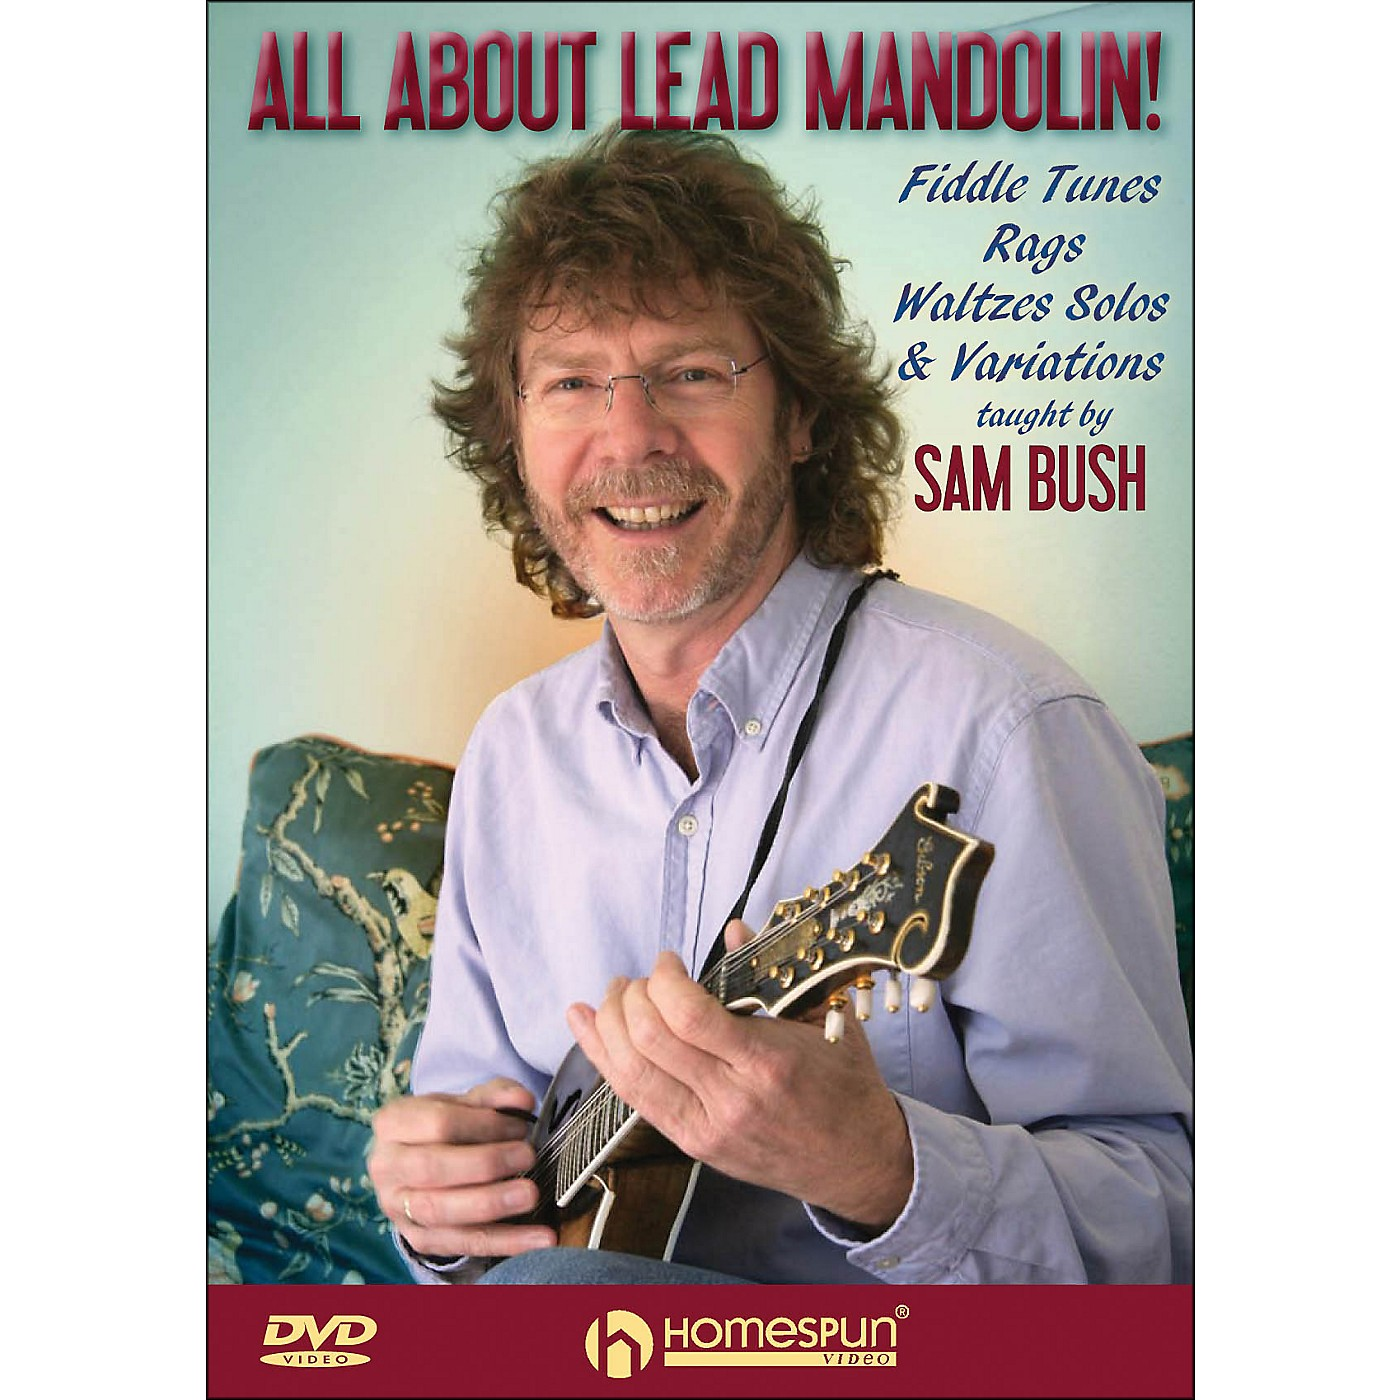 Homespun All About Lead Mandolin Fiddle Tunes Rags Waltzes Solos And Variations DVD thumbnail